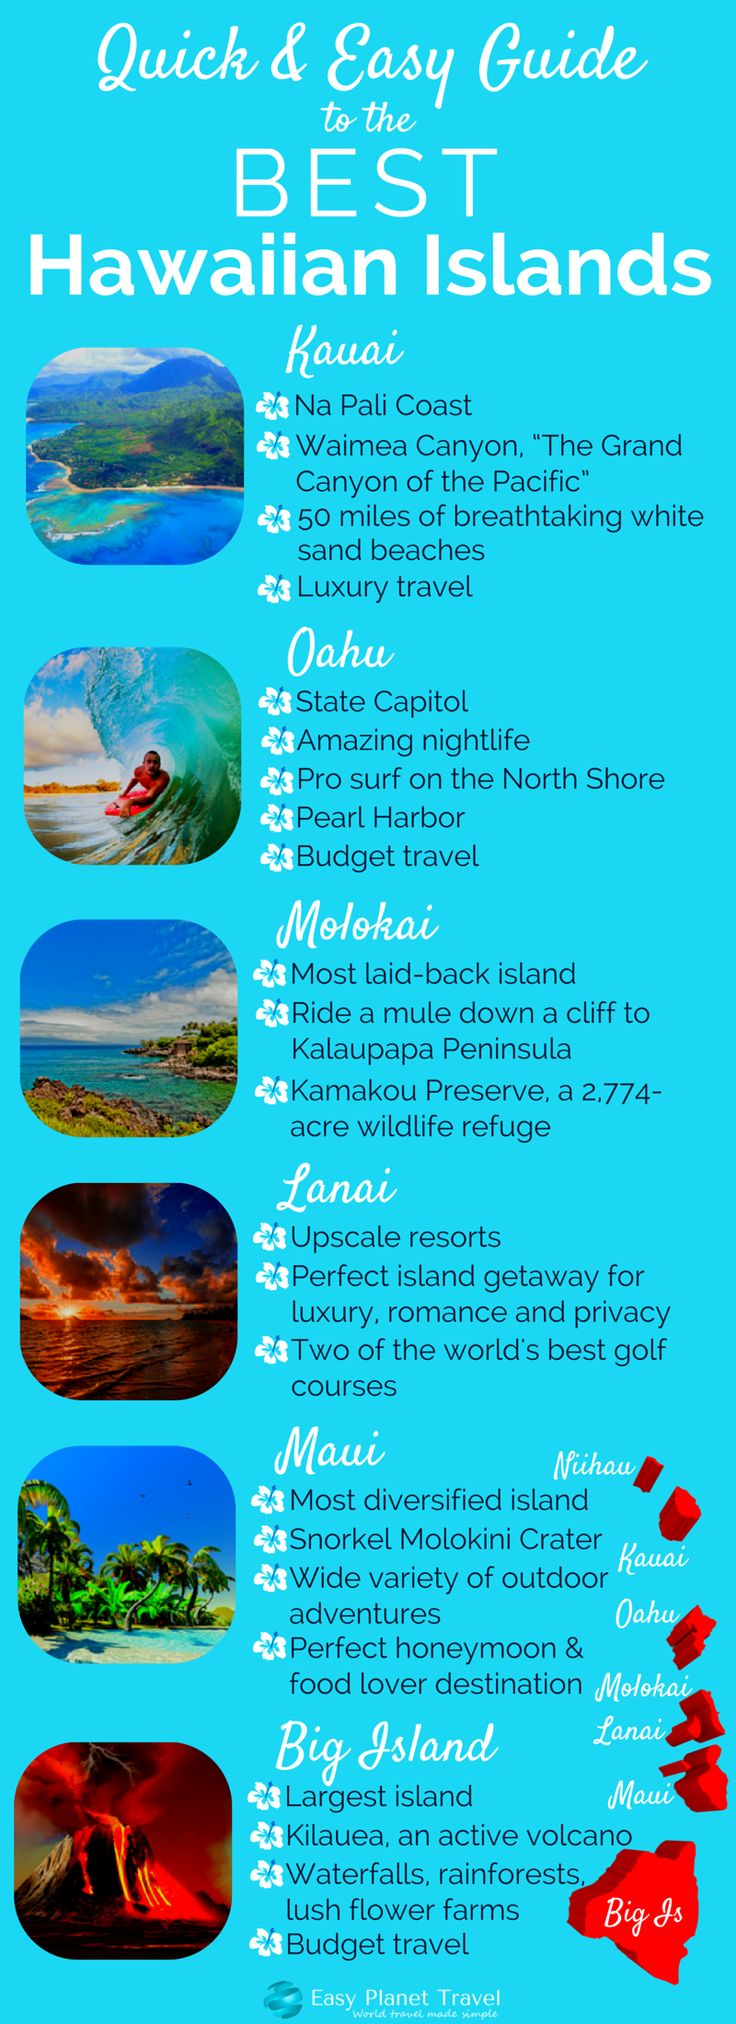 Quick & Easy Guide Hawaiian Islands